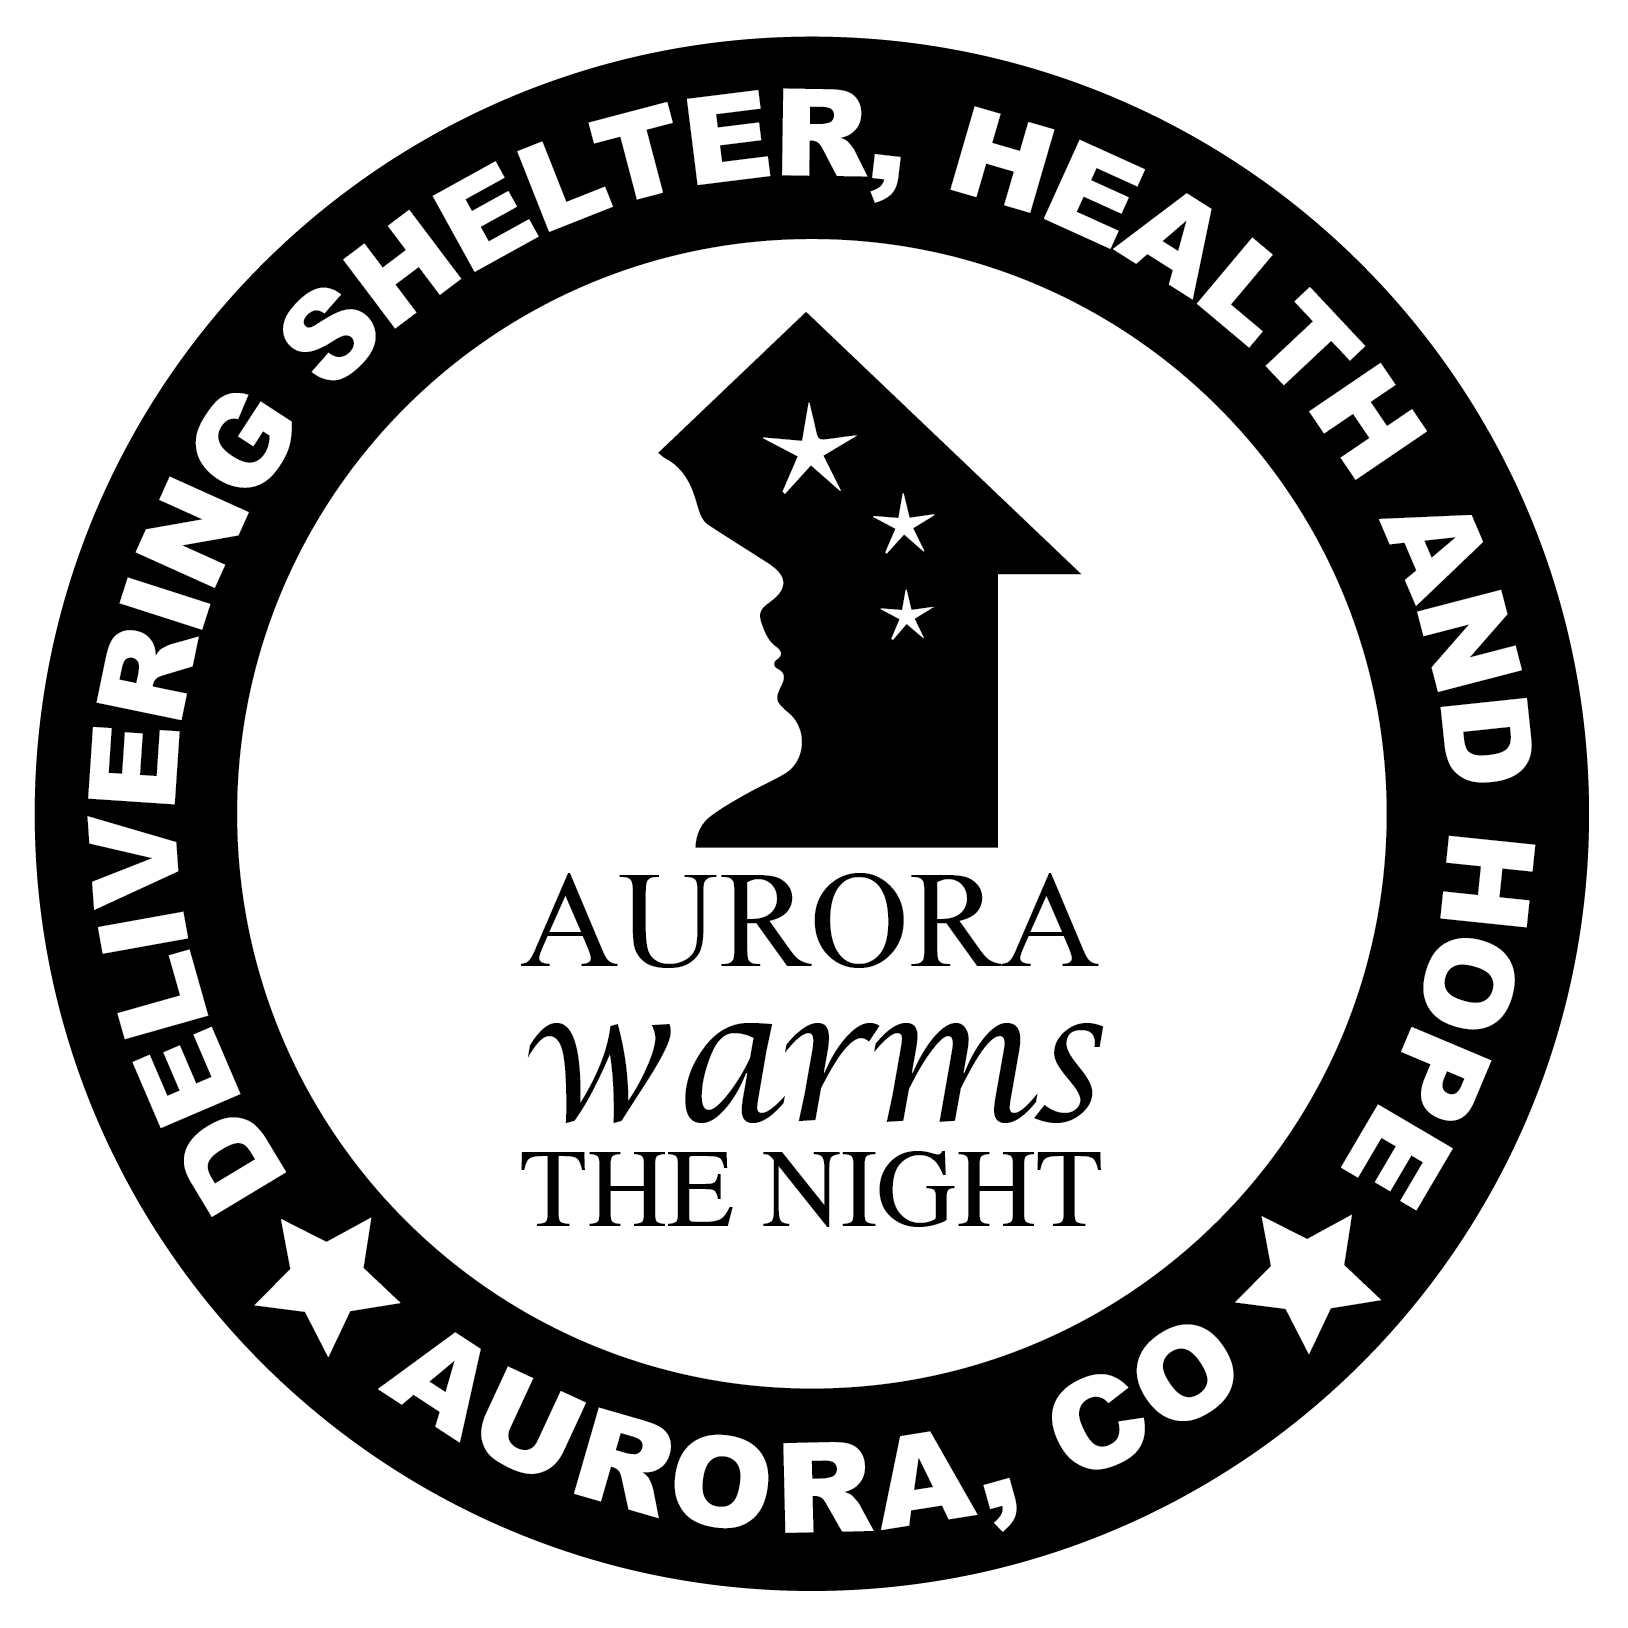 Aurora Warms the Night Logo with an outline of a face against a outline of a black house with three stars. Around the image are words that read, Delivering Shelter, Health and Hope, )image of a star) Aurora, CO (image of star).